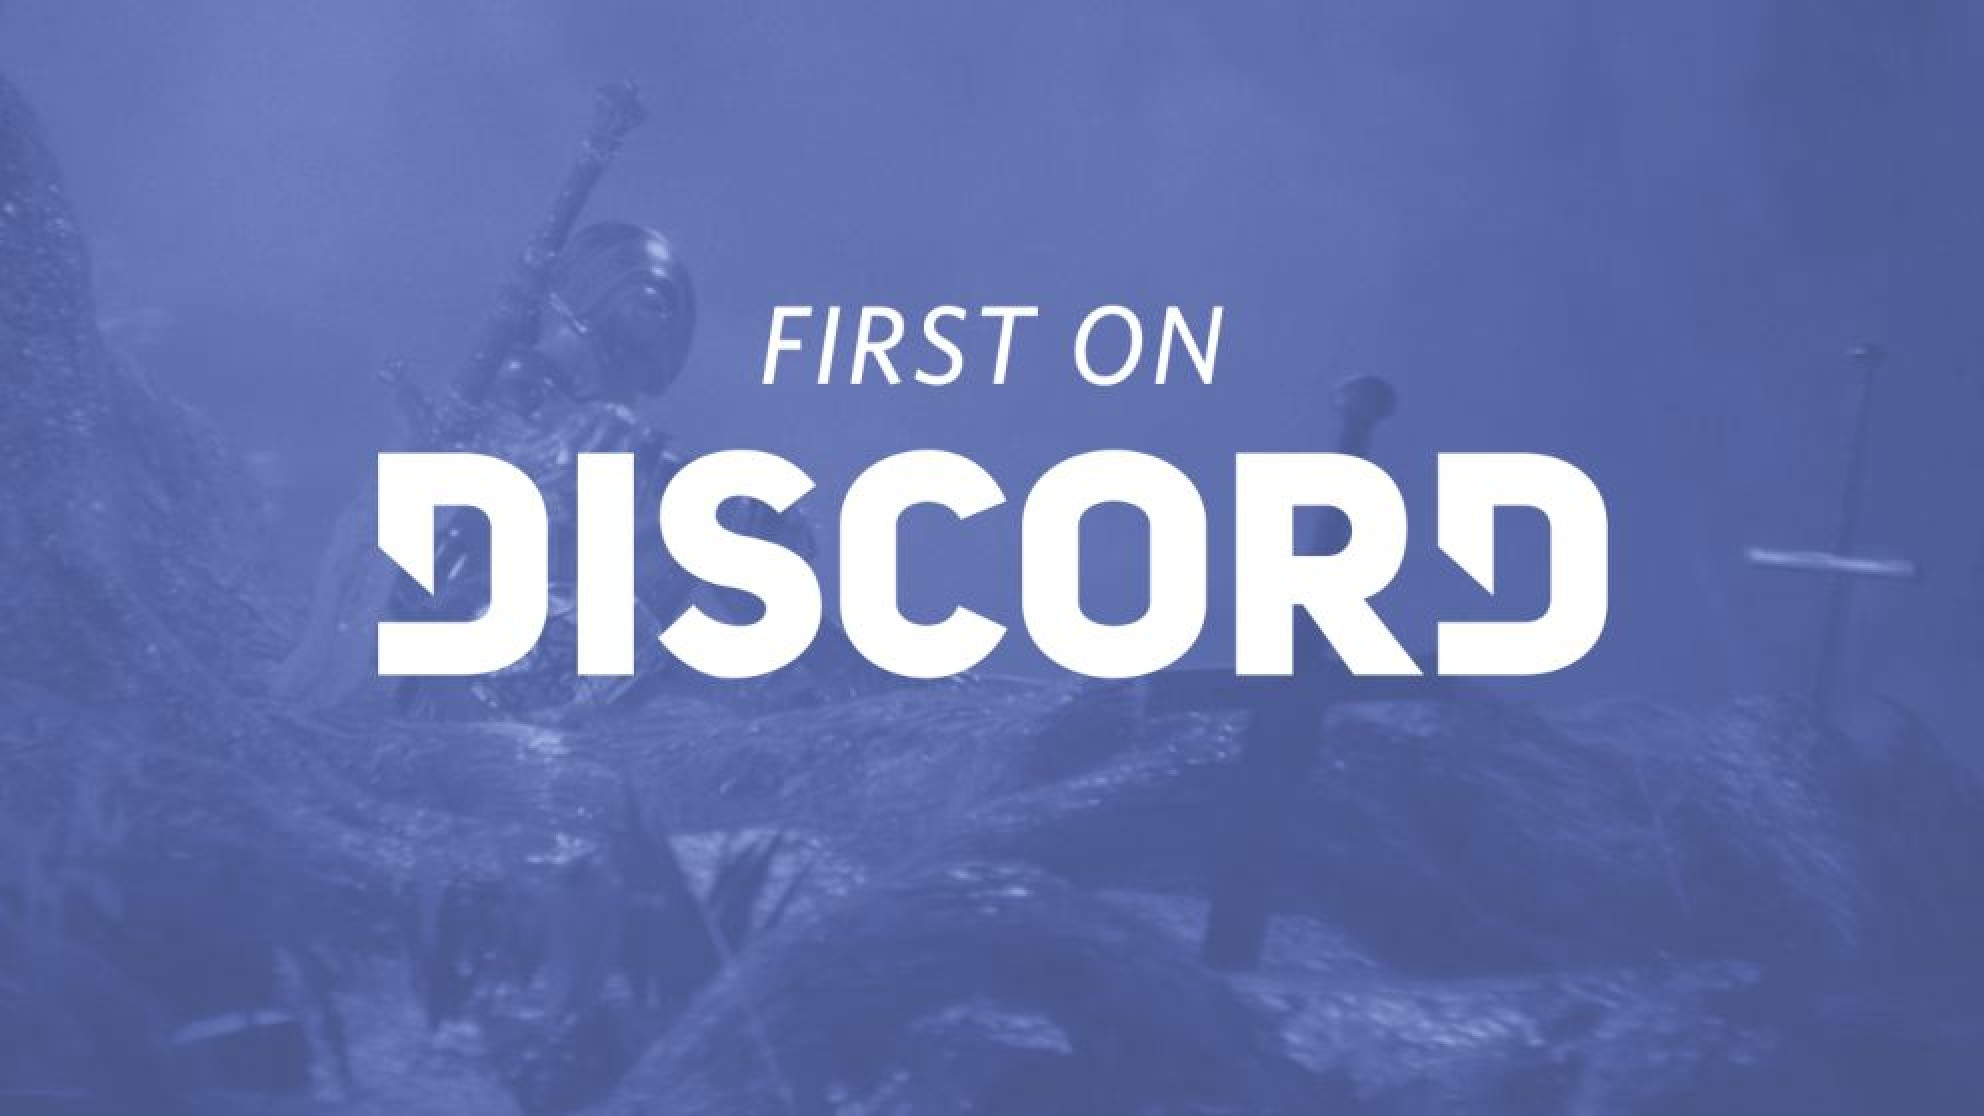 Seven games arrive as a part of the First on Discord initiative